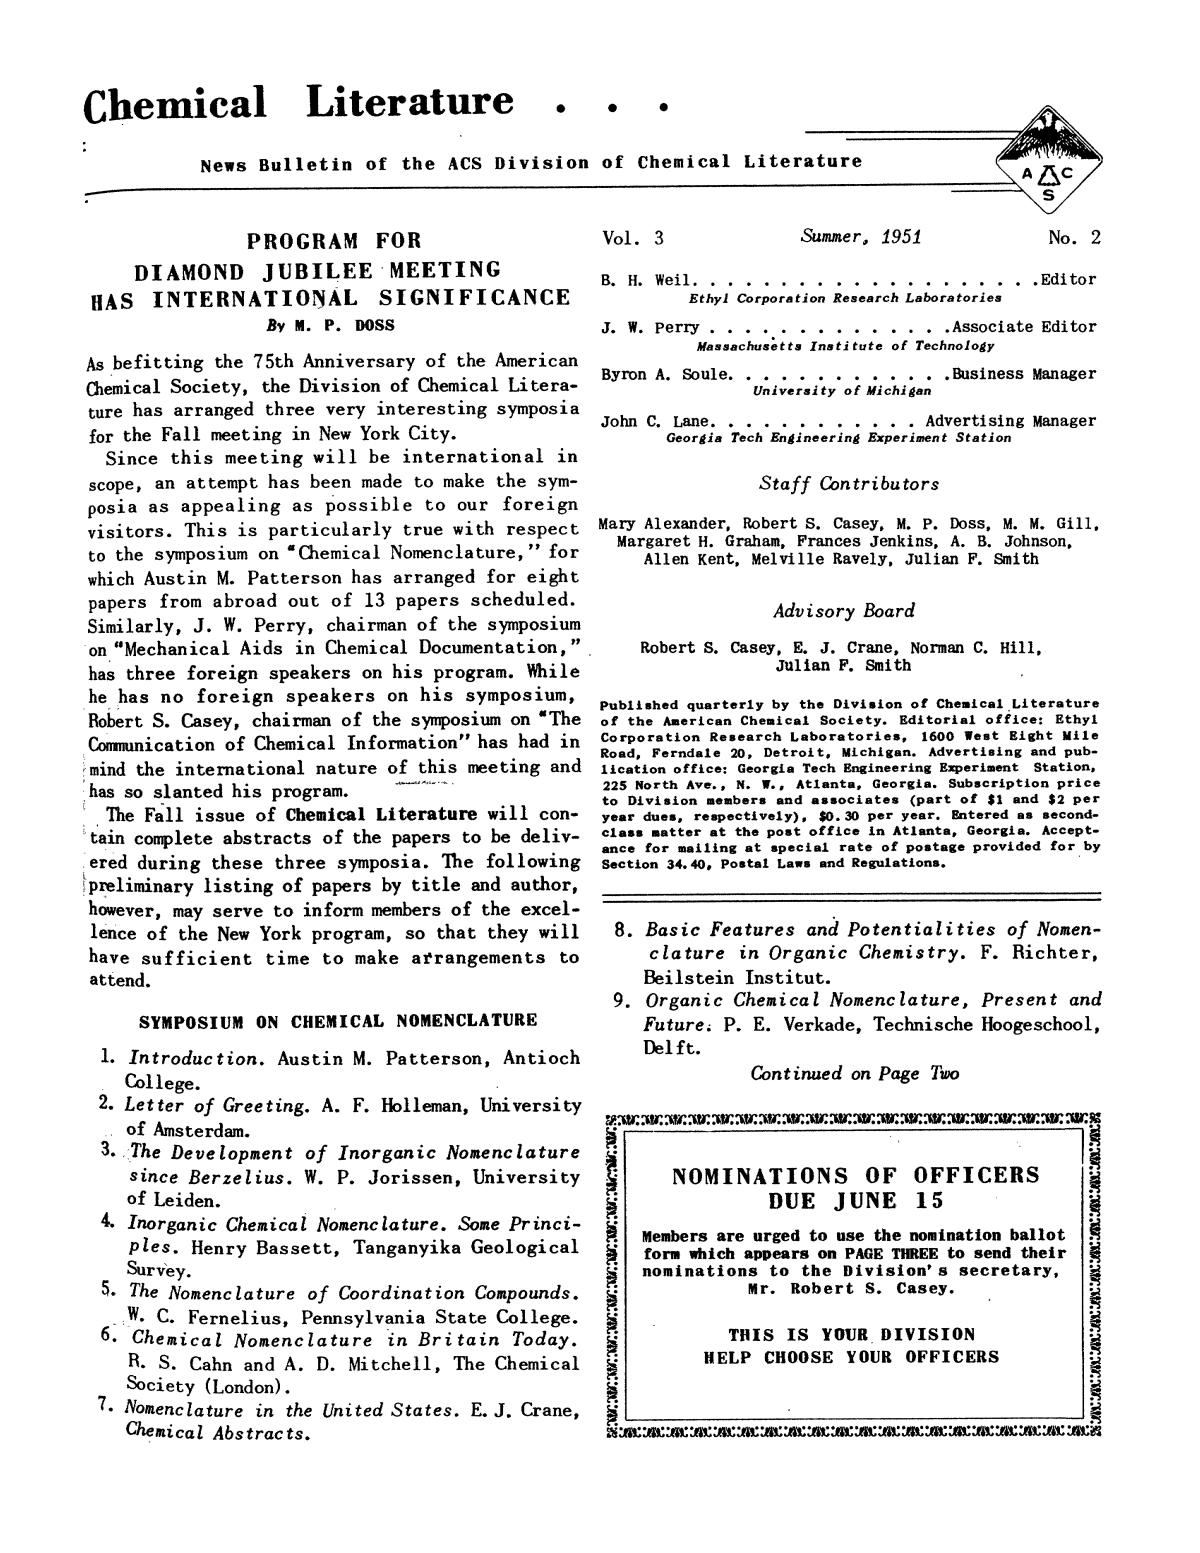 Chemical Literature, Volume 3, Number 2, Summer 1951                                                                                                      1